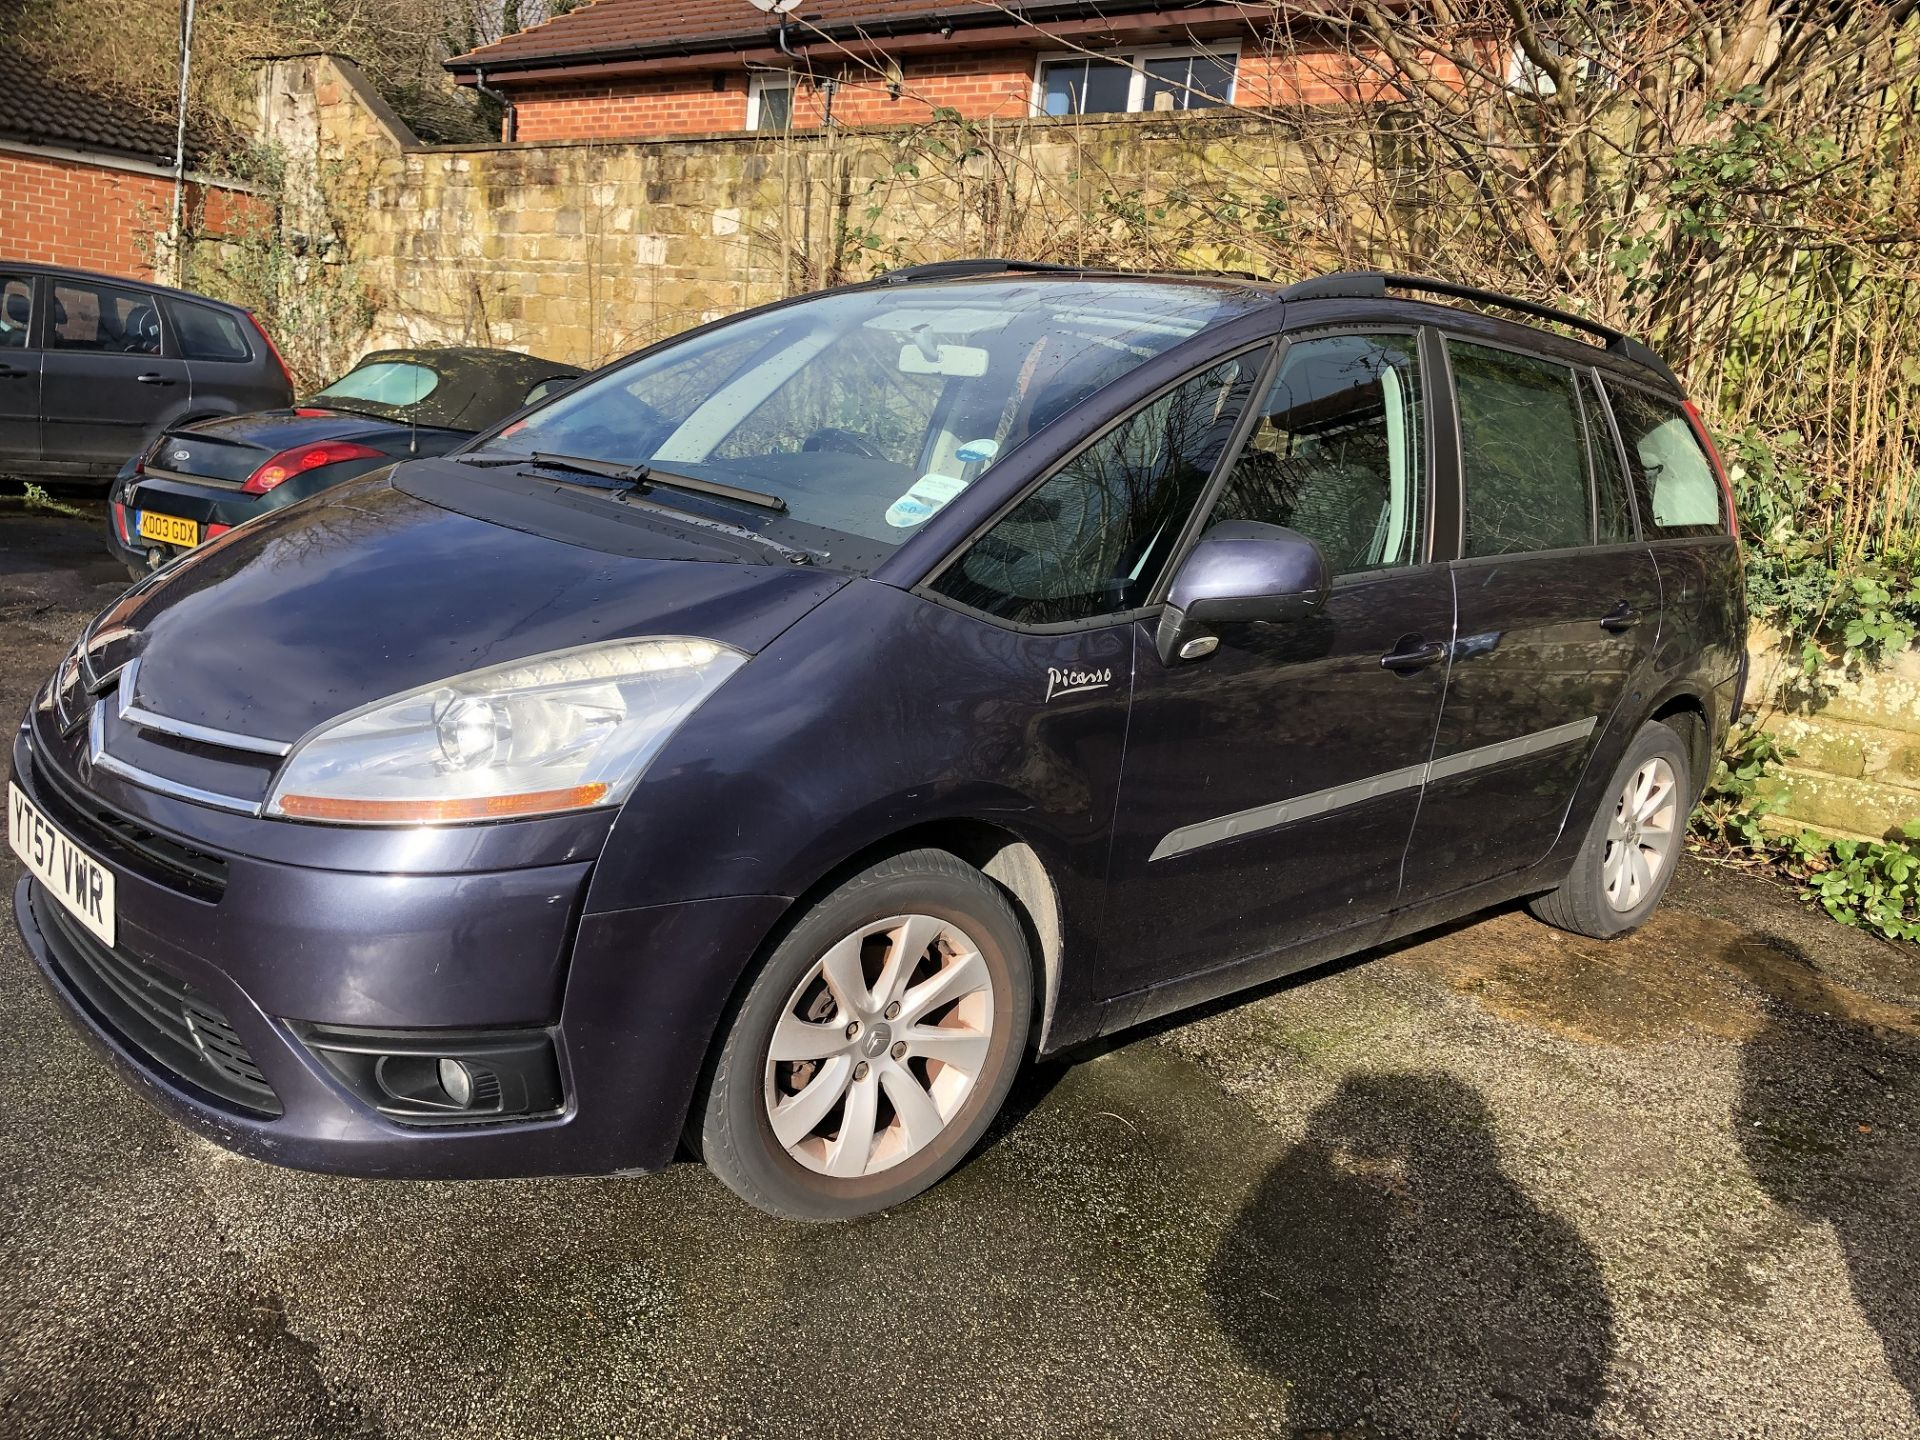 Lot 53 - 2007/57 REG CITROEN C4 PICASSO VTR PLUS HDI AUTOMATIC 1.6 DIESEL MPV *NO VAT*